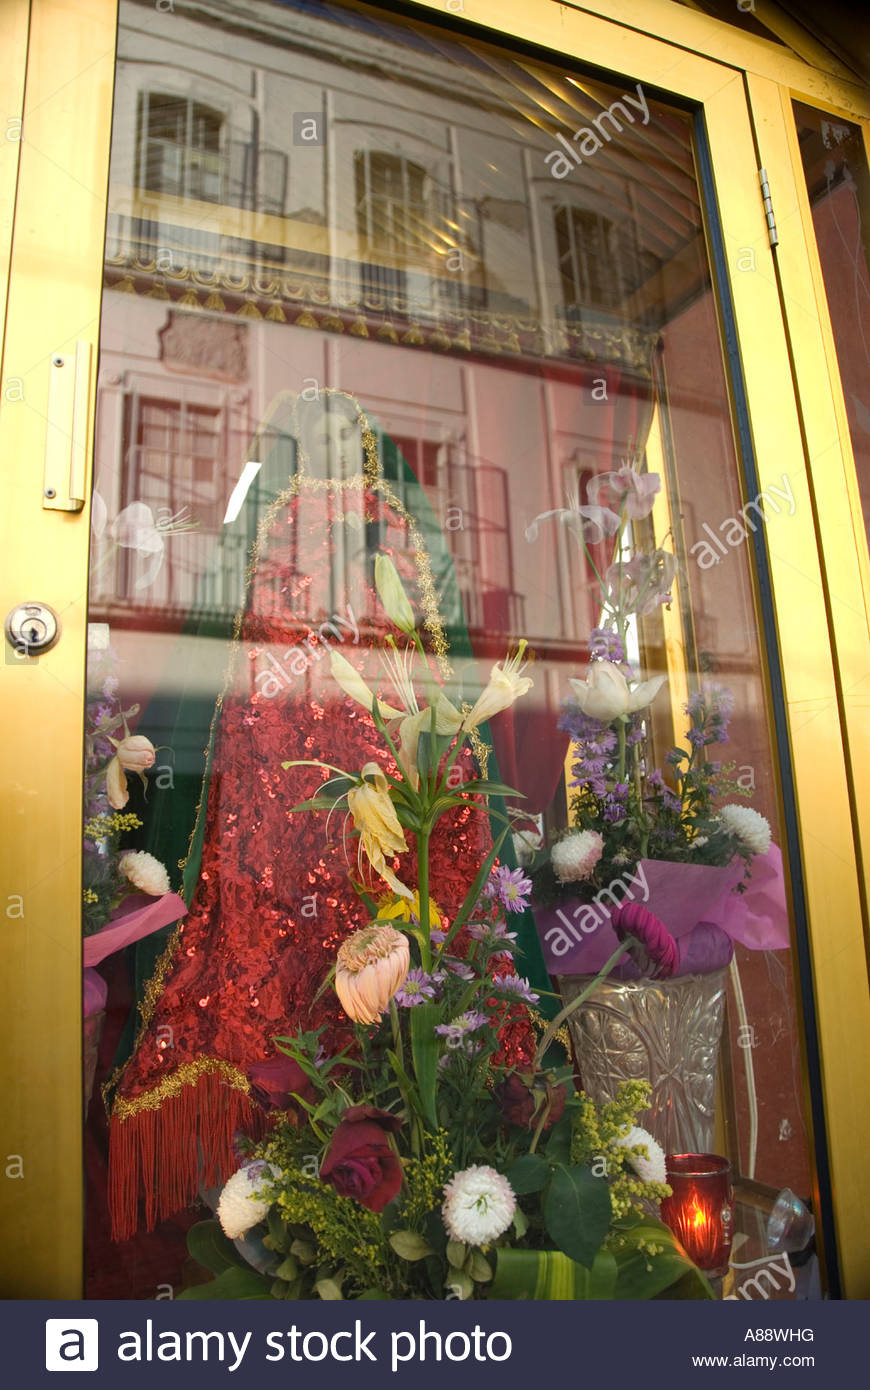 gold case displaying religious christmas decorations and reflection of city homes in glass mexico city historic centre 2007 nr